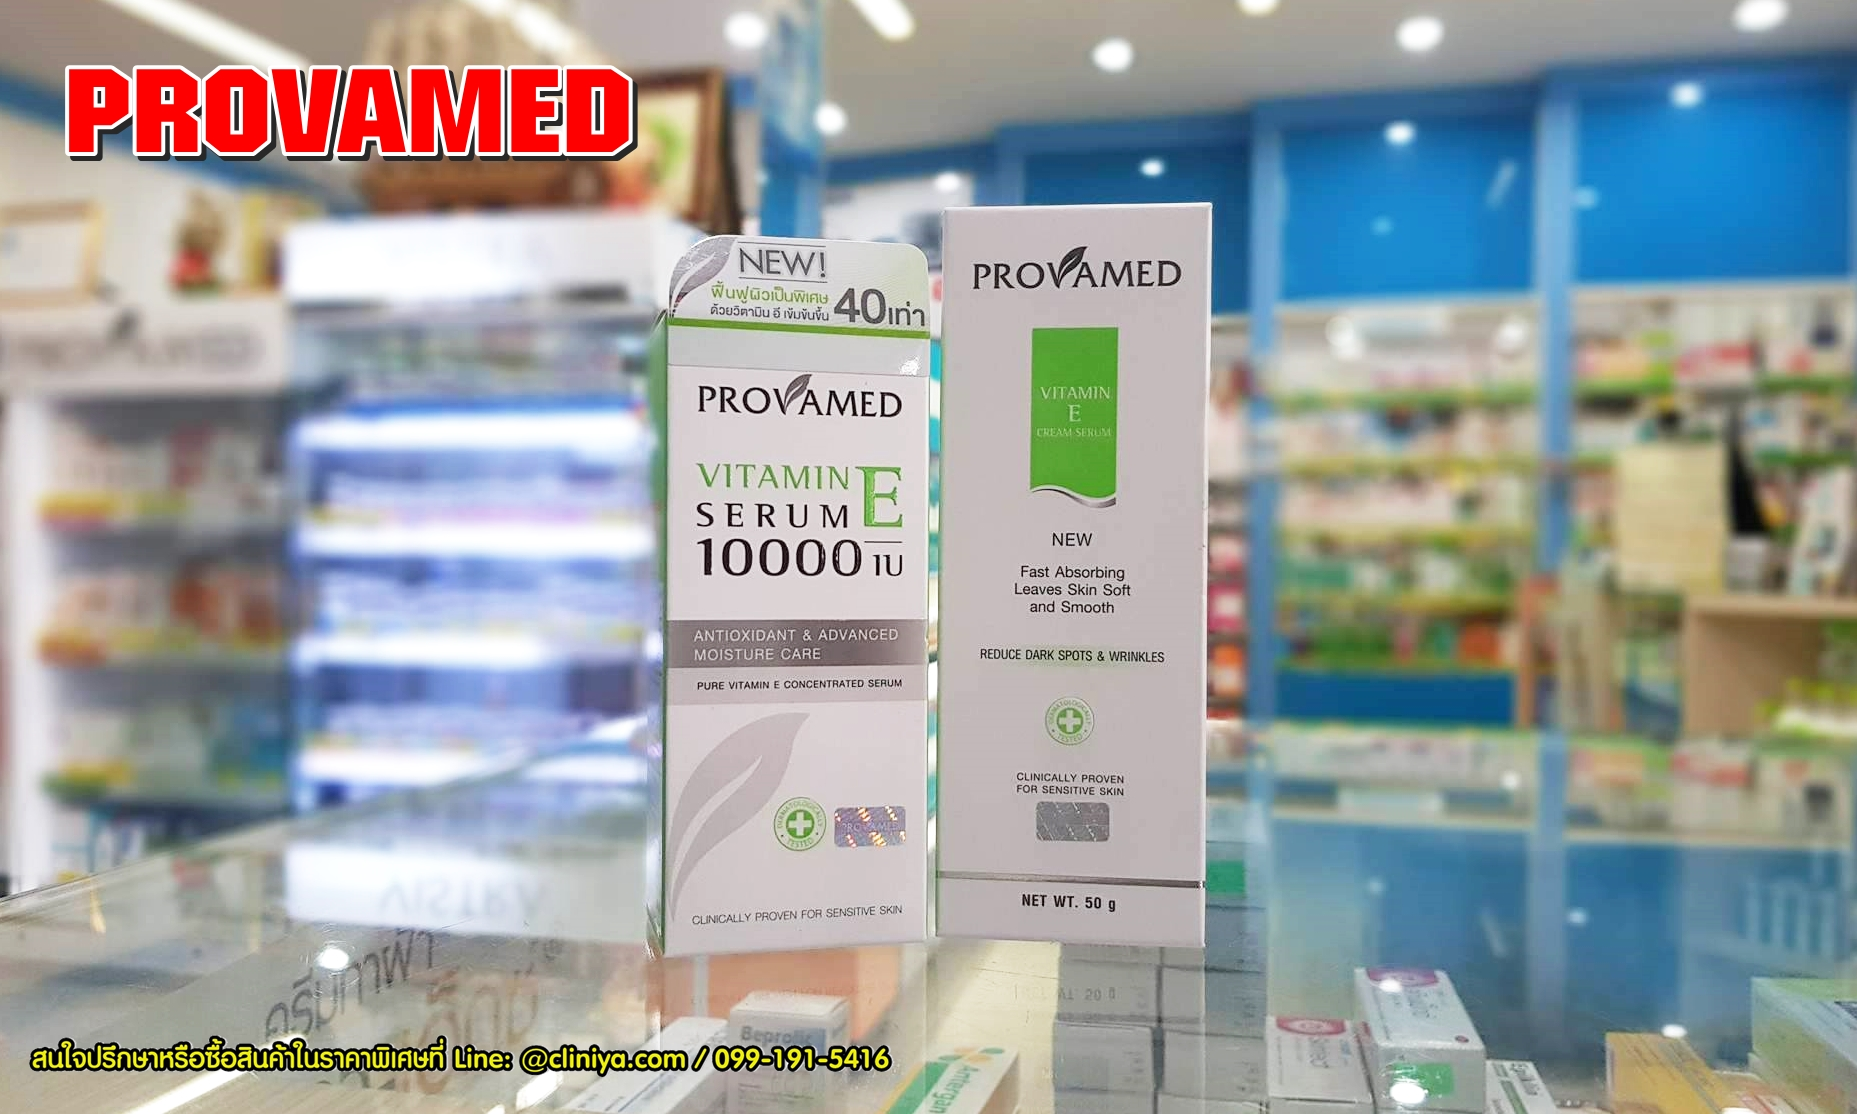 มอยเจอร์ไรเซอร์ Provamed vitamin e serum 10000 IU / Provamed Vitamin E cream serum 50g